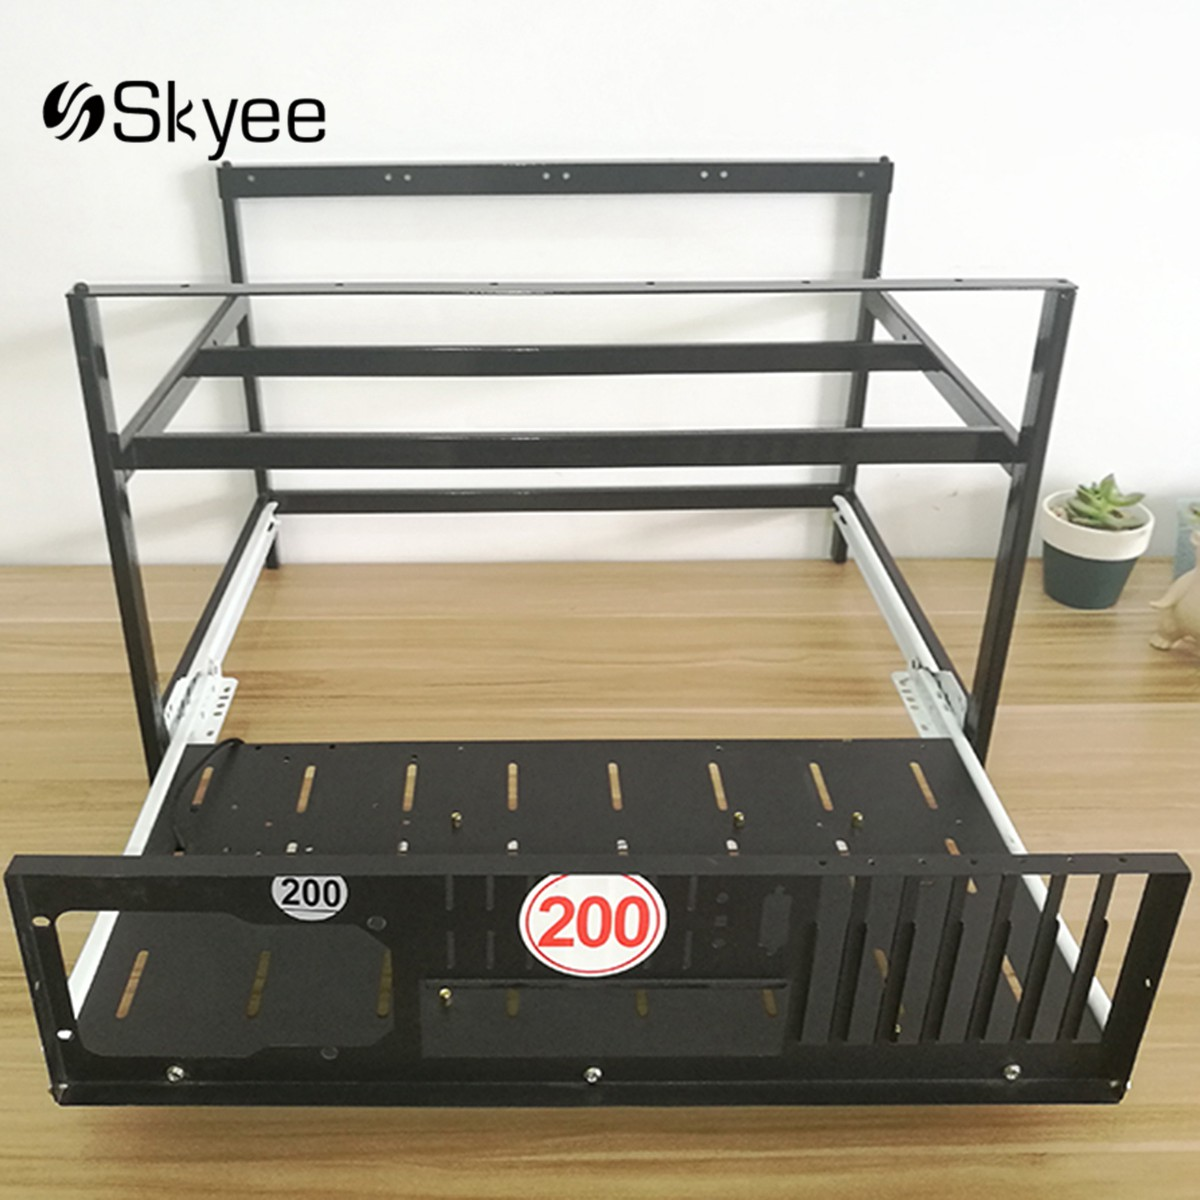 S SKYEE Open Air Mining Rig Push-pull Frame Miner Case for 6 GPU ETC BTH New Computer Mining Case Frame Server Chassis new 3u ultra short computer case 380mm large panel big power supply ultra short 3u computer case server computer case